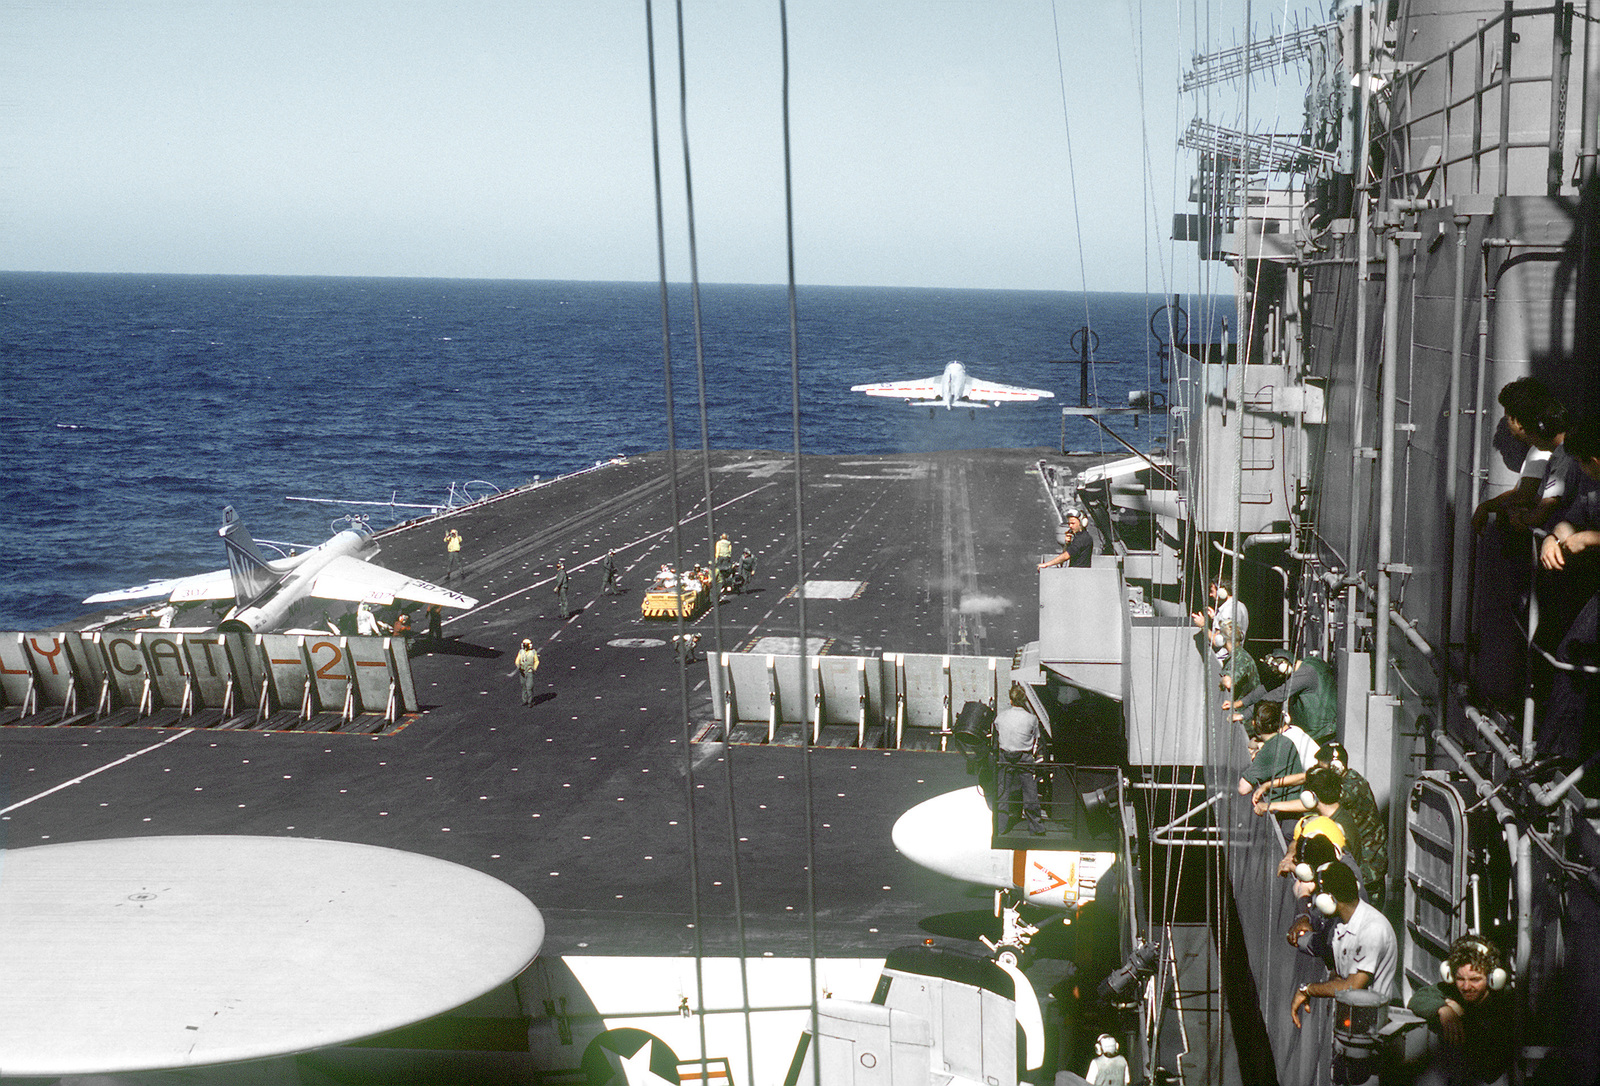 A rear view of an F-4 Phantom II aircraft being launched and an A-7 Corsair II aircraft awaiting launch from the flight deck of the aircraft carrier USS CORAL SEA (CV-43)